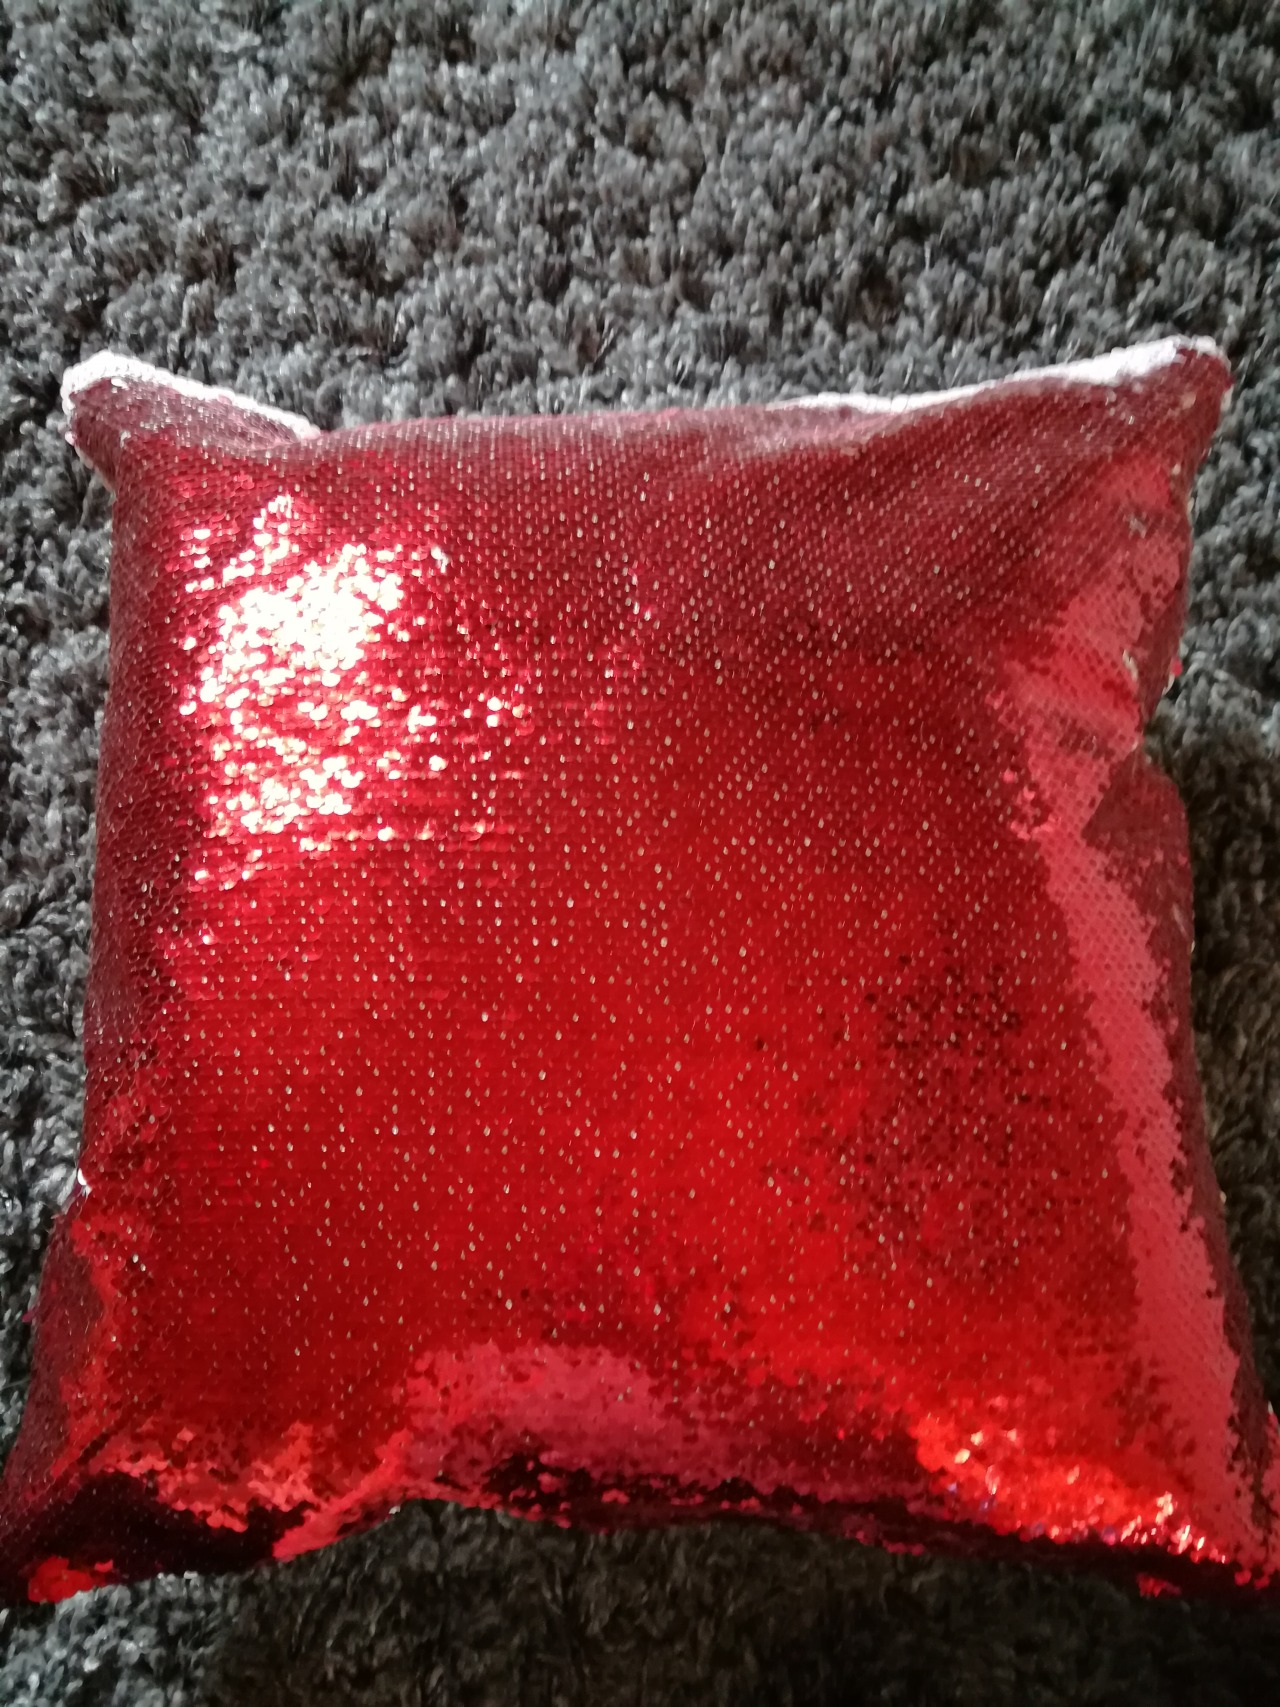 it s one of those sequin pillows where